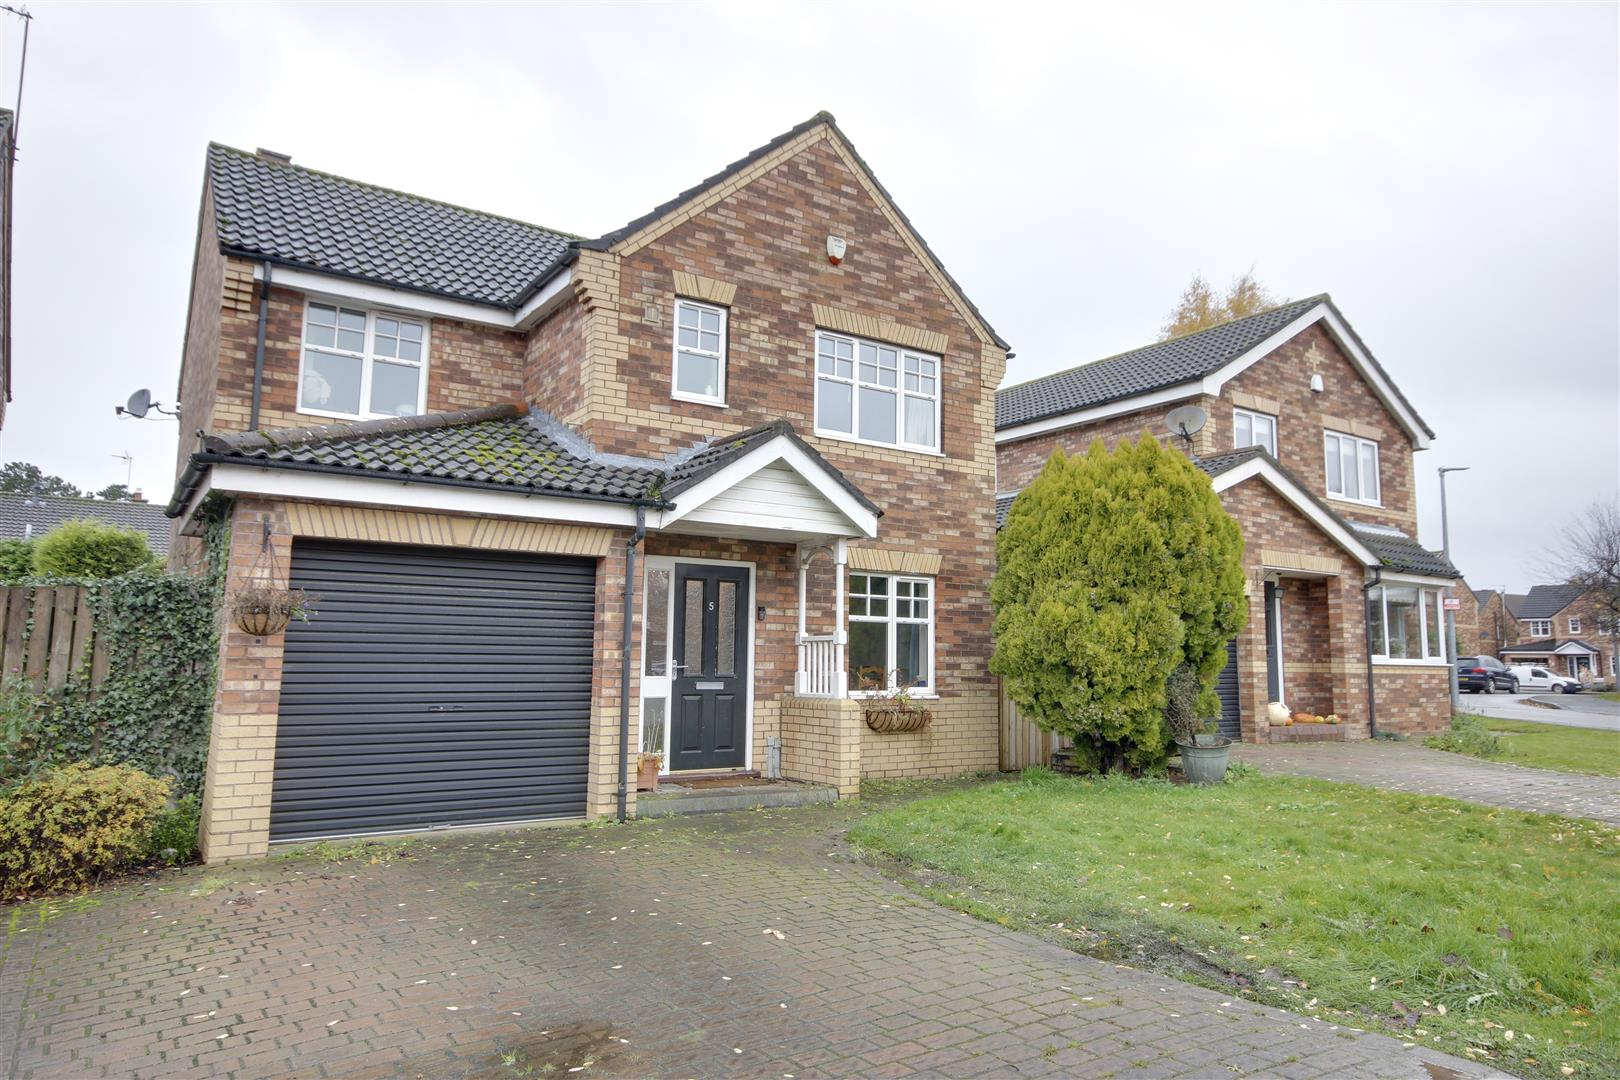 5 Fountains Way, North Cave, 5, HU15 2NW